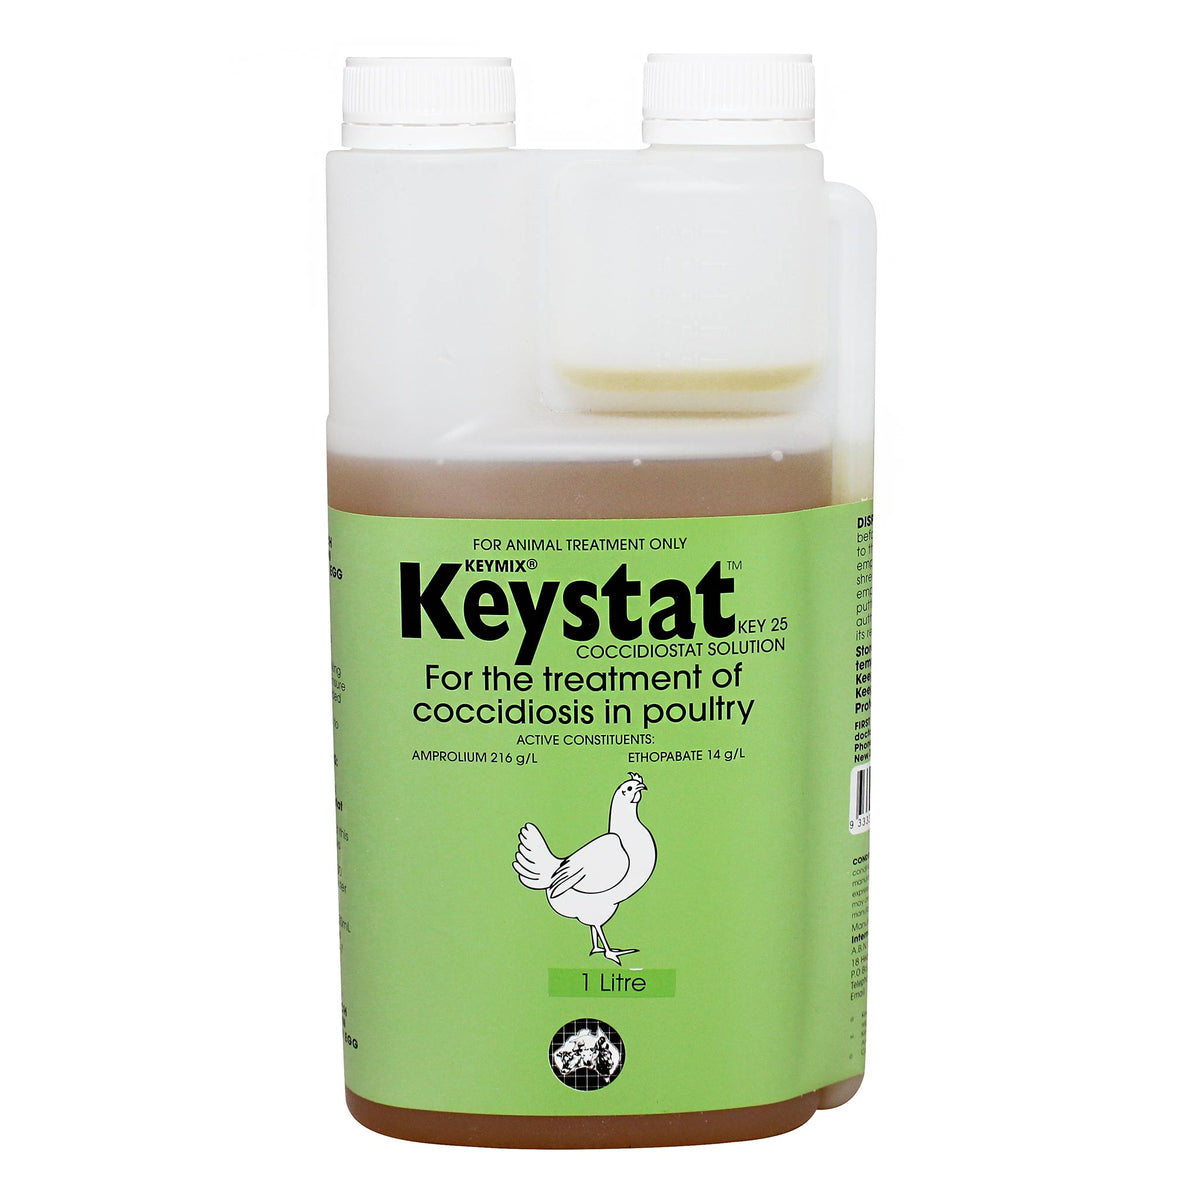 Keystat Coccidiosis Treatment for Poultry